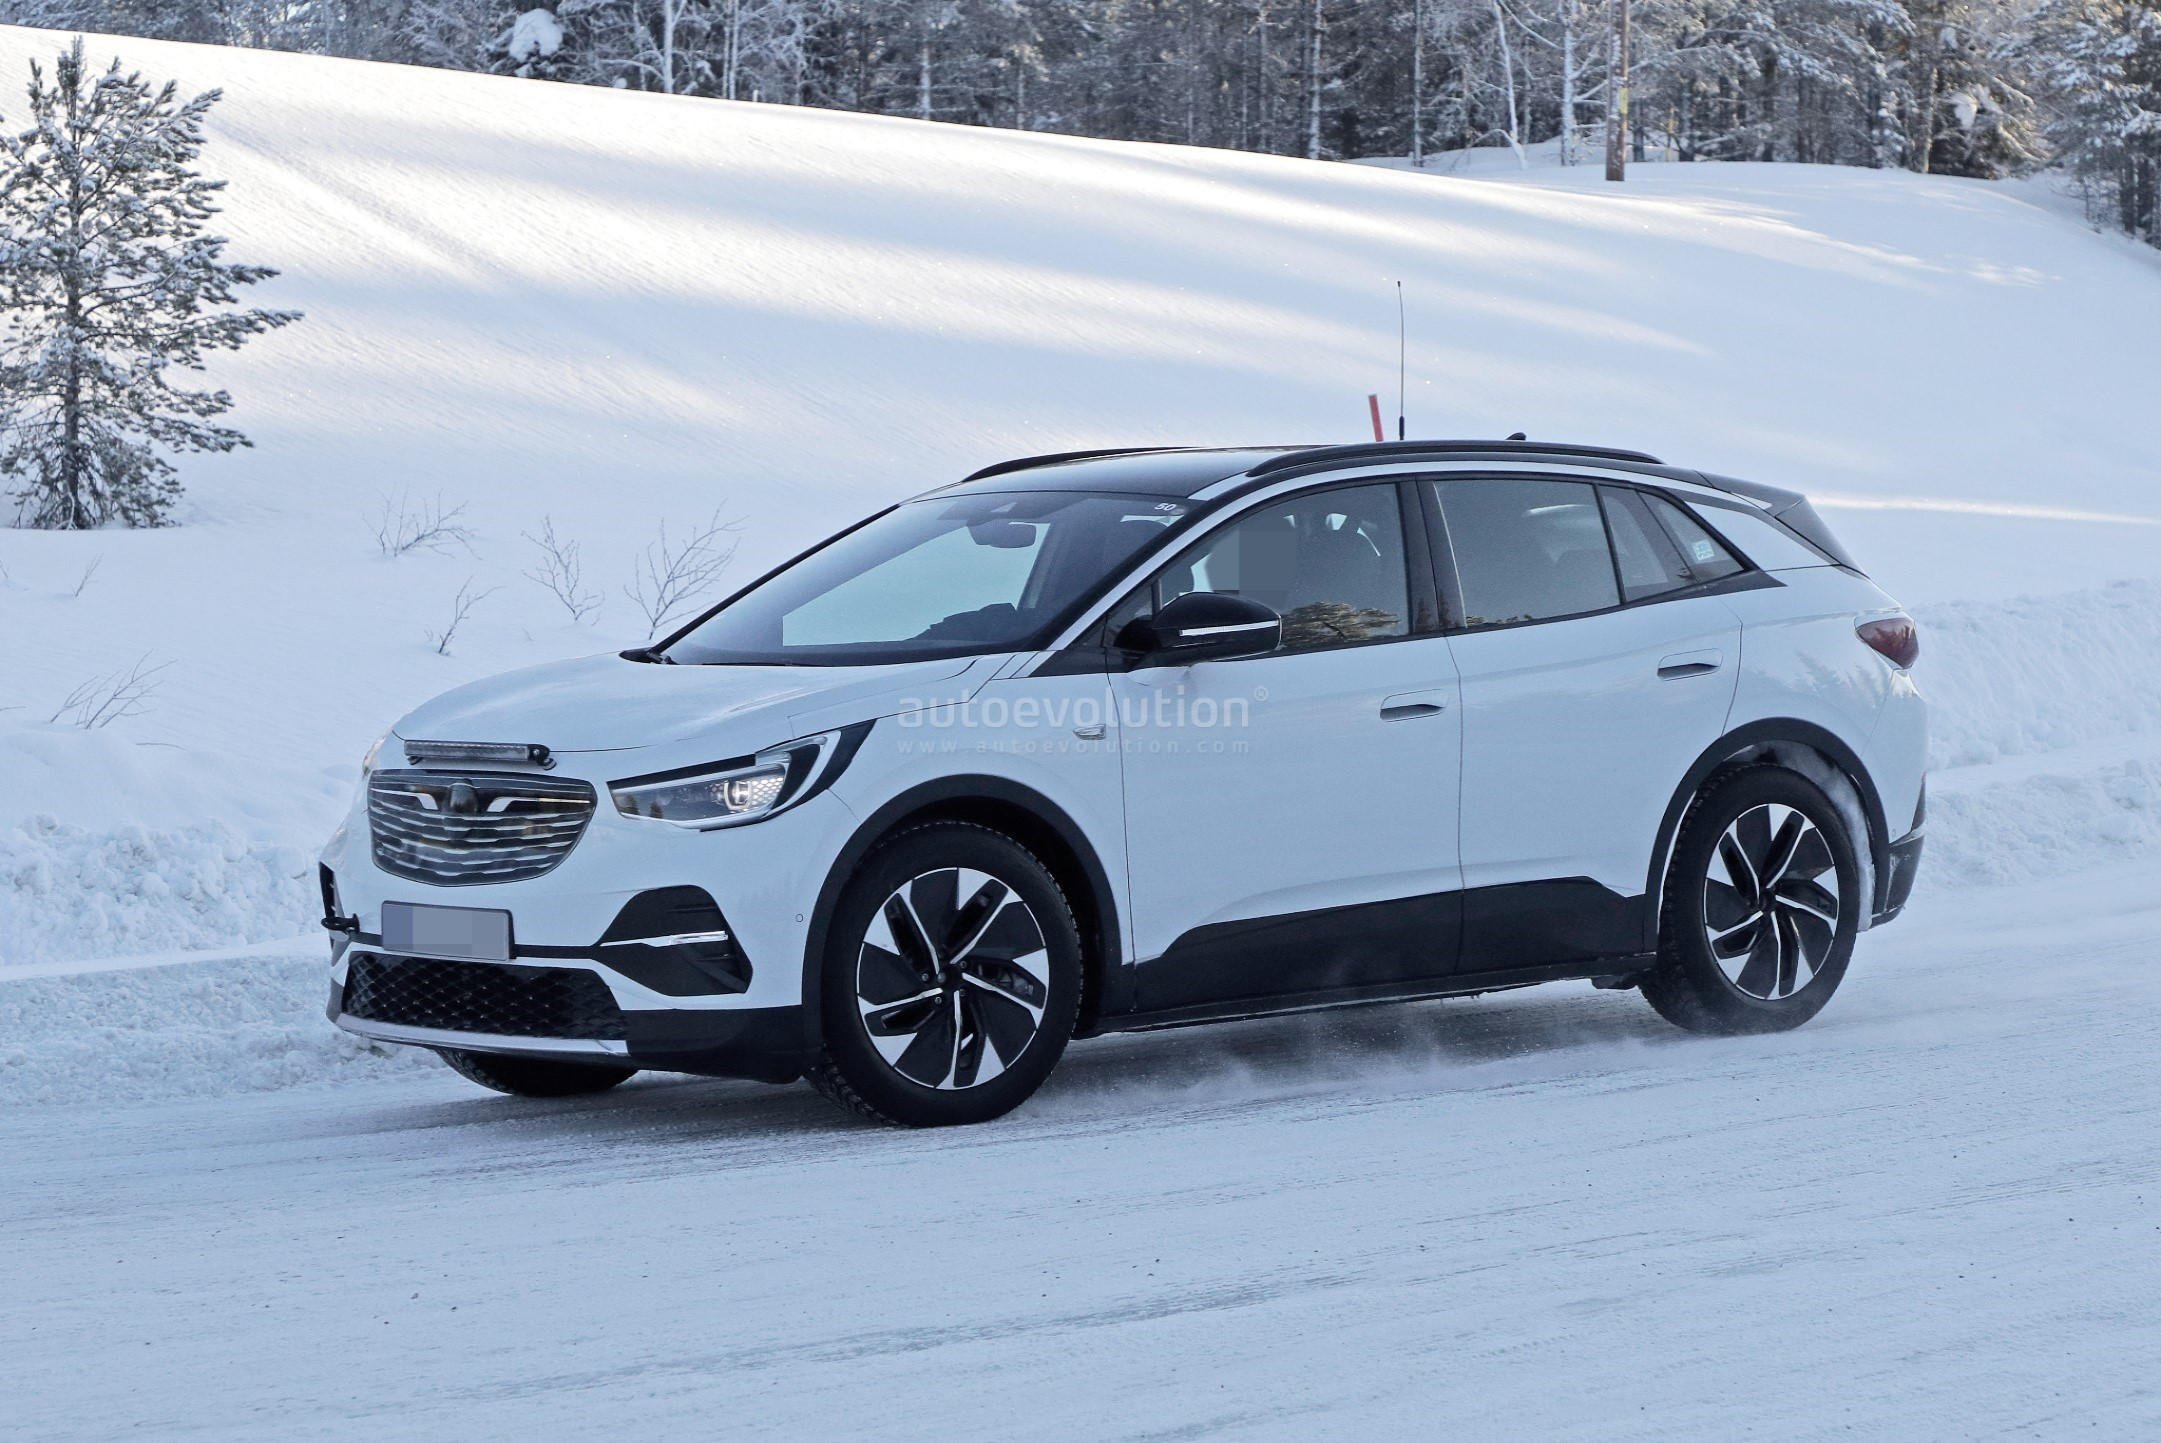 2021 volkswagen id4 electric crossover spied with opel